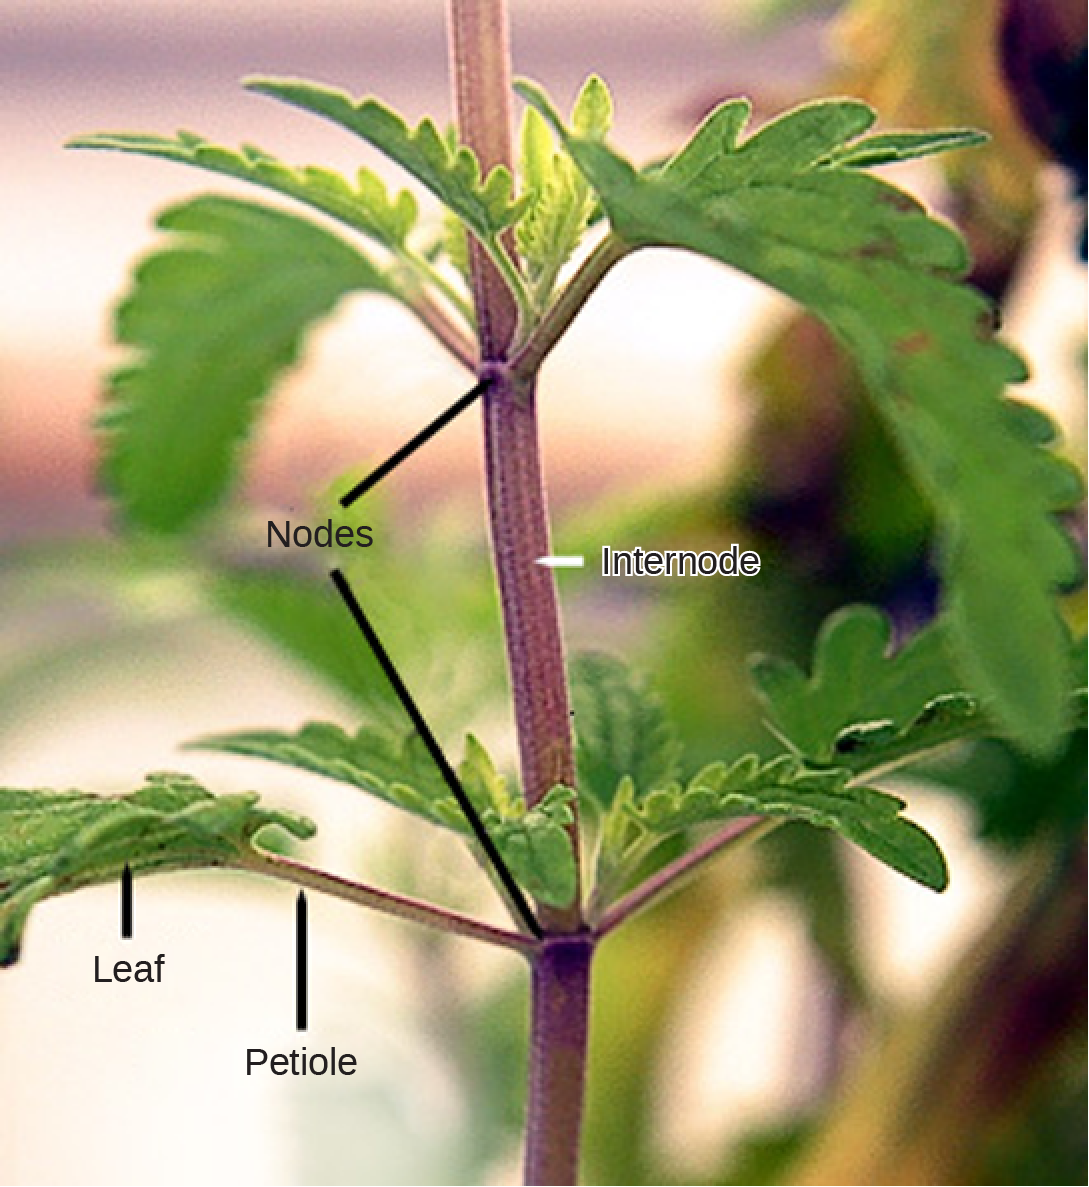 Photo shows a stem. Leaves are attached to petioles, which are small branches that radiate out from the stem. The petioles join the branch at junctions called nodes. The nodes are separated by a length of stem called the internode. Above the petioles, small leaves bud out from the node.